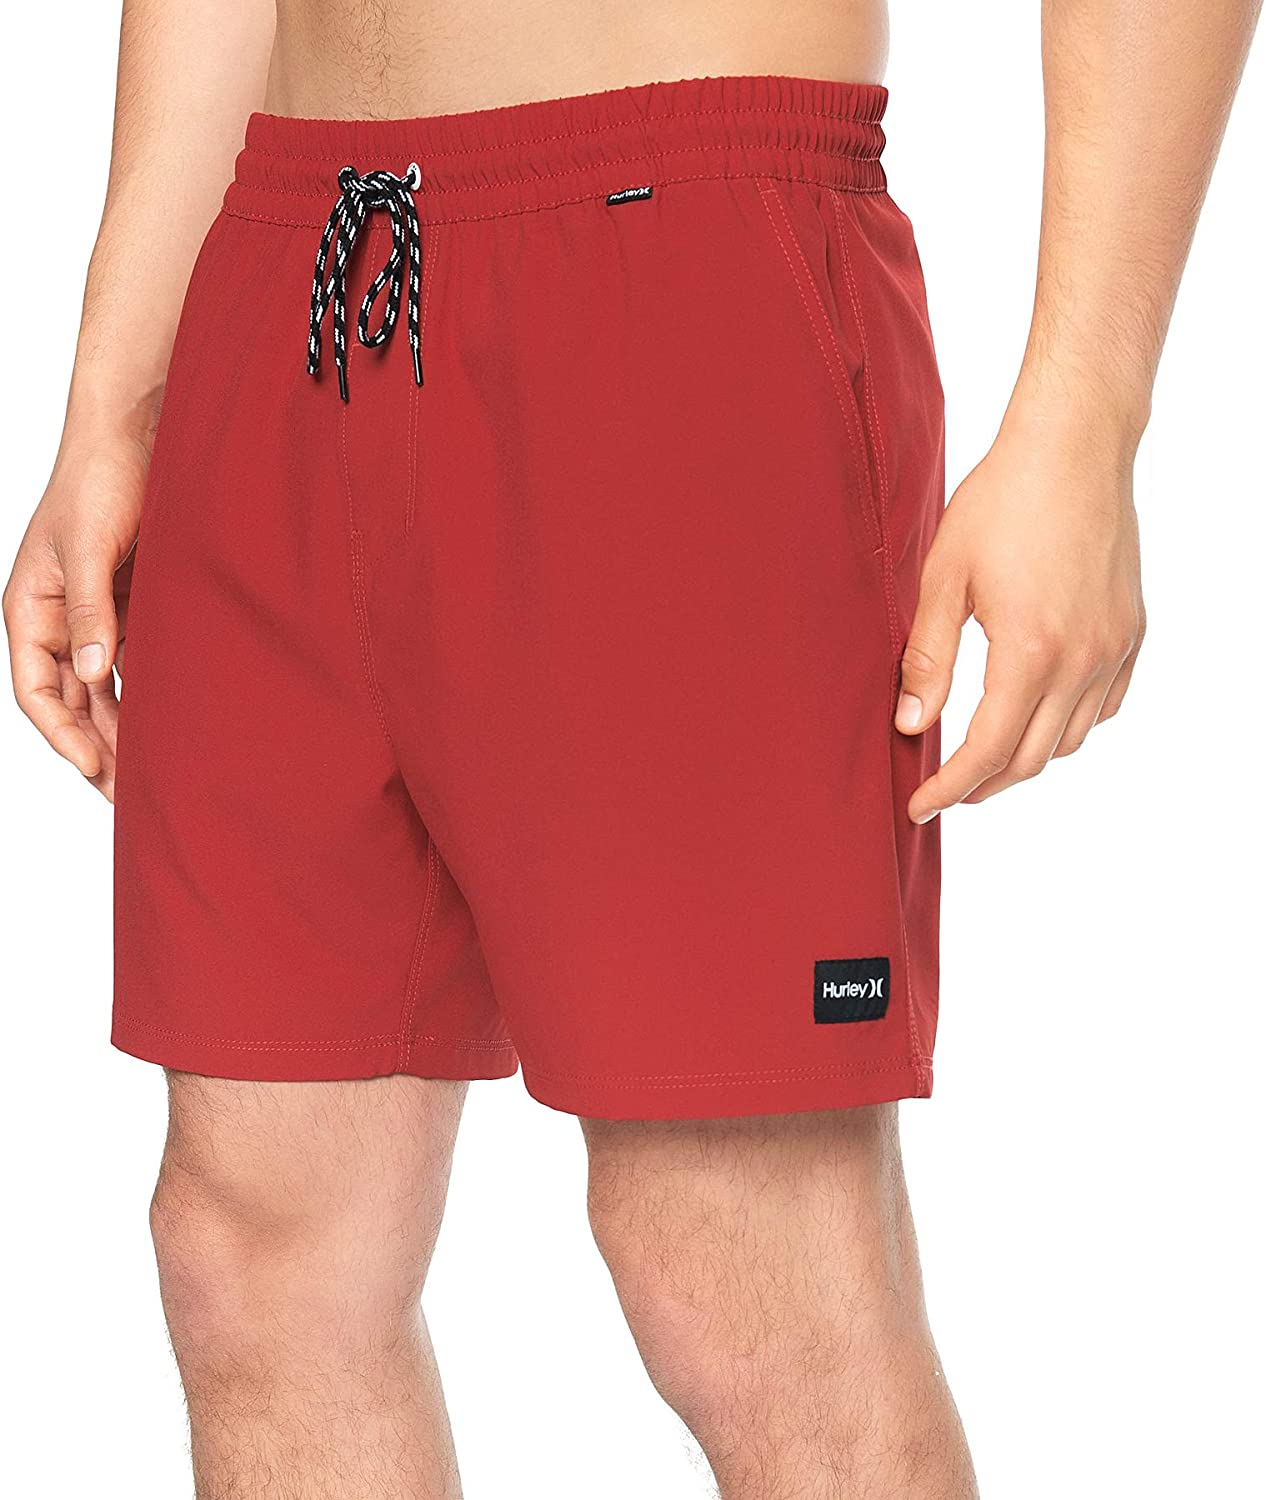 "Hurley 17"" One & Only Volley Boardshorts"